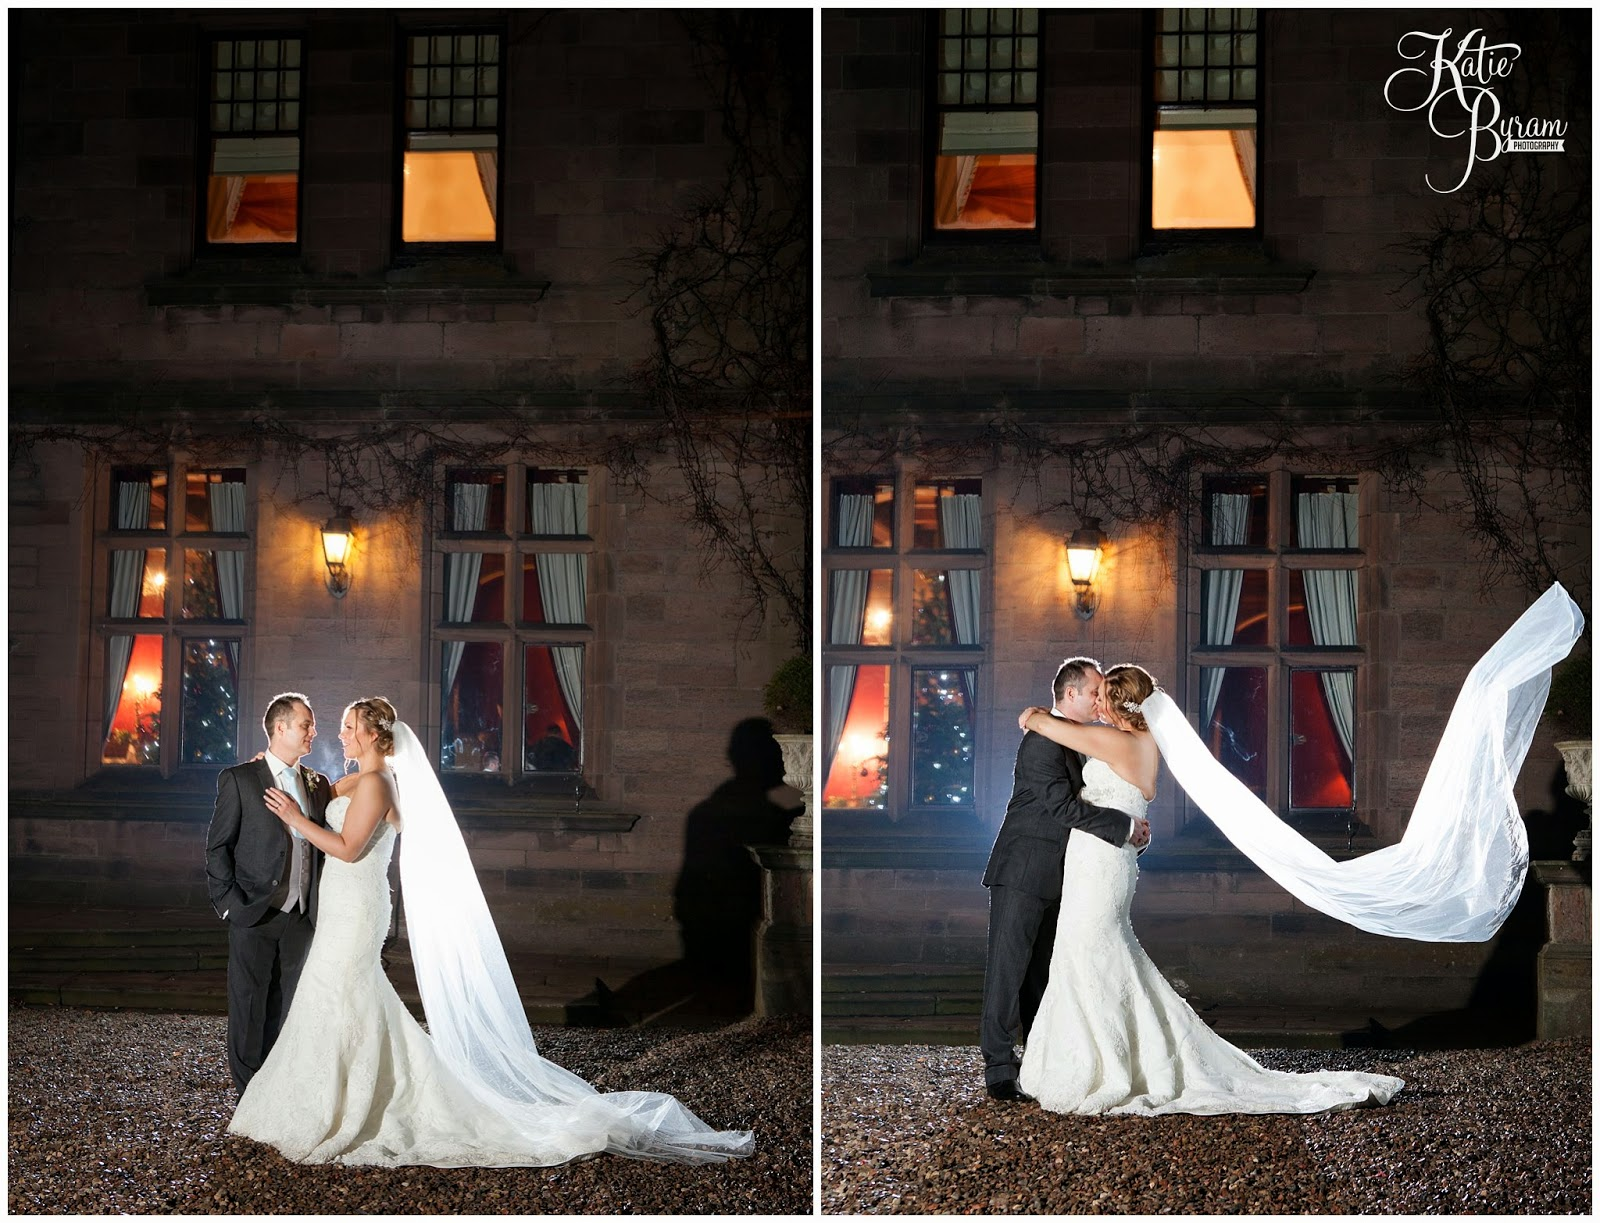 nighttime wedding, ellingham hall wedding, alnwick wedding, katie byram photography, ellingham hall, mia sposa bridal, wedding venues north east, newcastle wedding photographer, ellingham, alnwick treehouse wedding, adam prest flowers, winter wedding, winter wedding theme, by wendy stationery, quirky wedding photography, northumberland wedding, northumberland, dani.mua, dani make up artist, lisa cameron hair